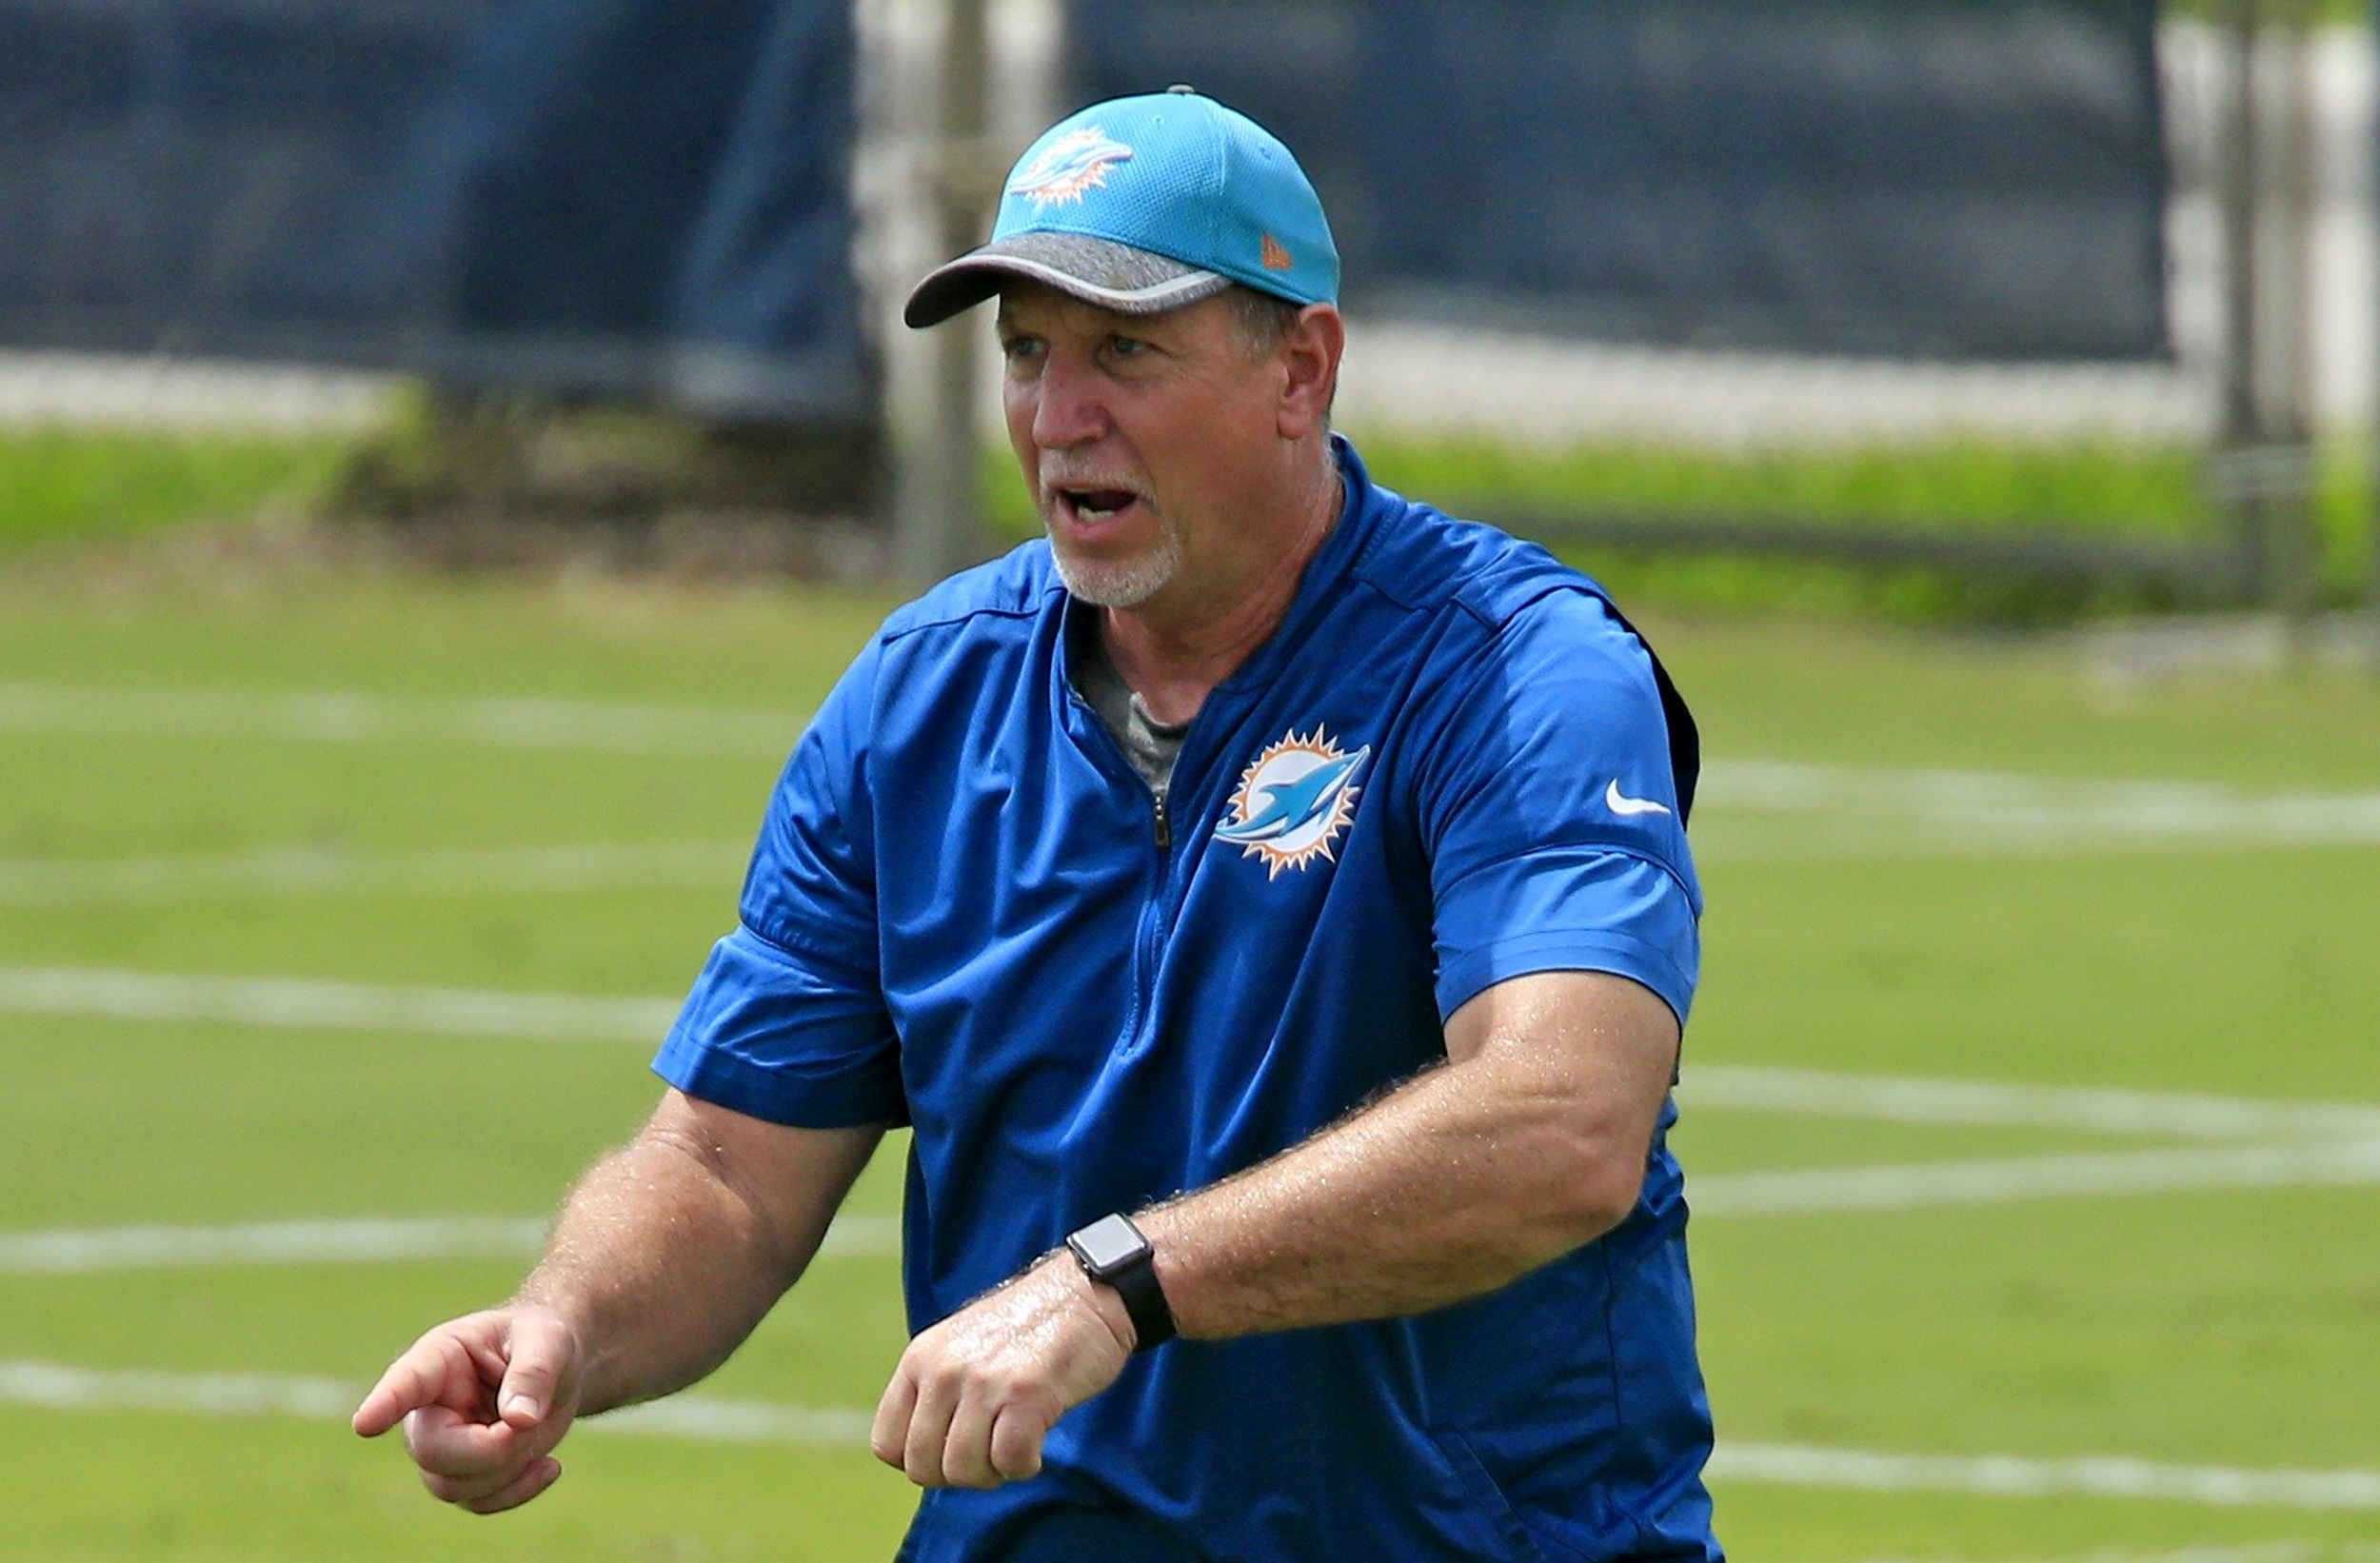 Dolphins-Coach-Resigns-After-Facebook-Video-Goes-Viral